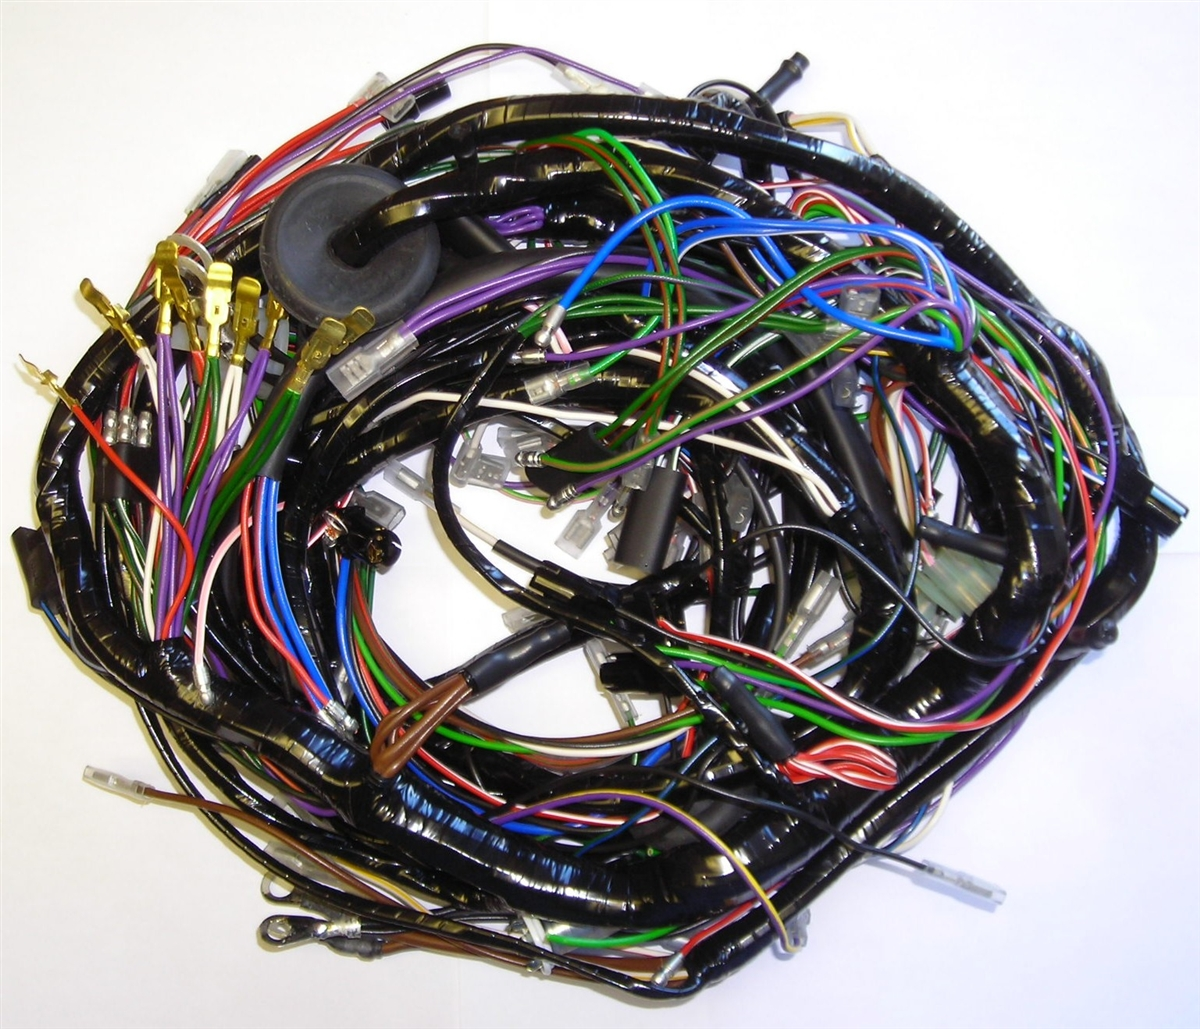 1523 2?1354101756 spitfire 1500 main wiring harness wiring harness diagram at mifinder.co